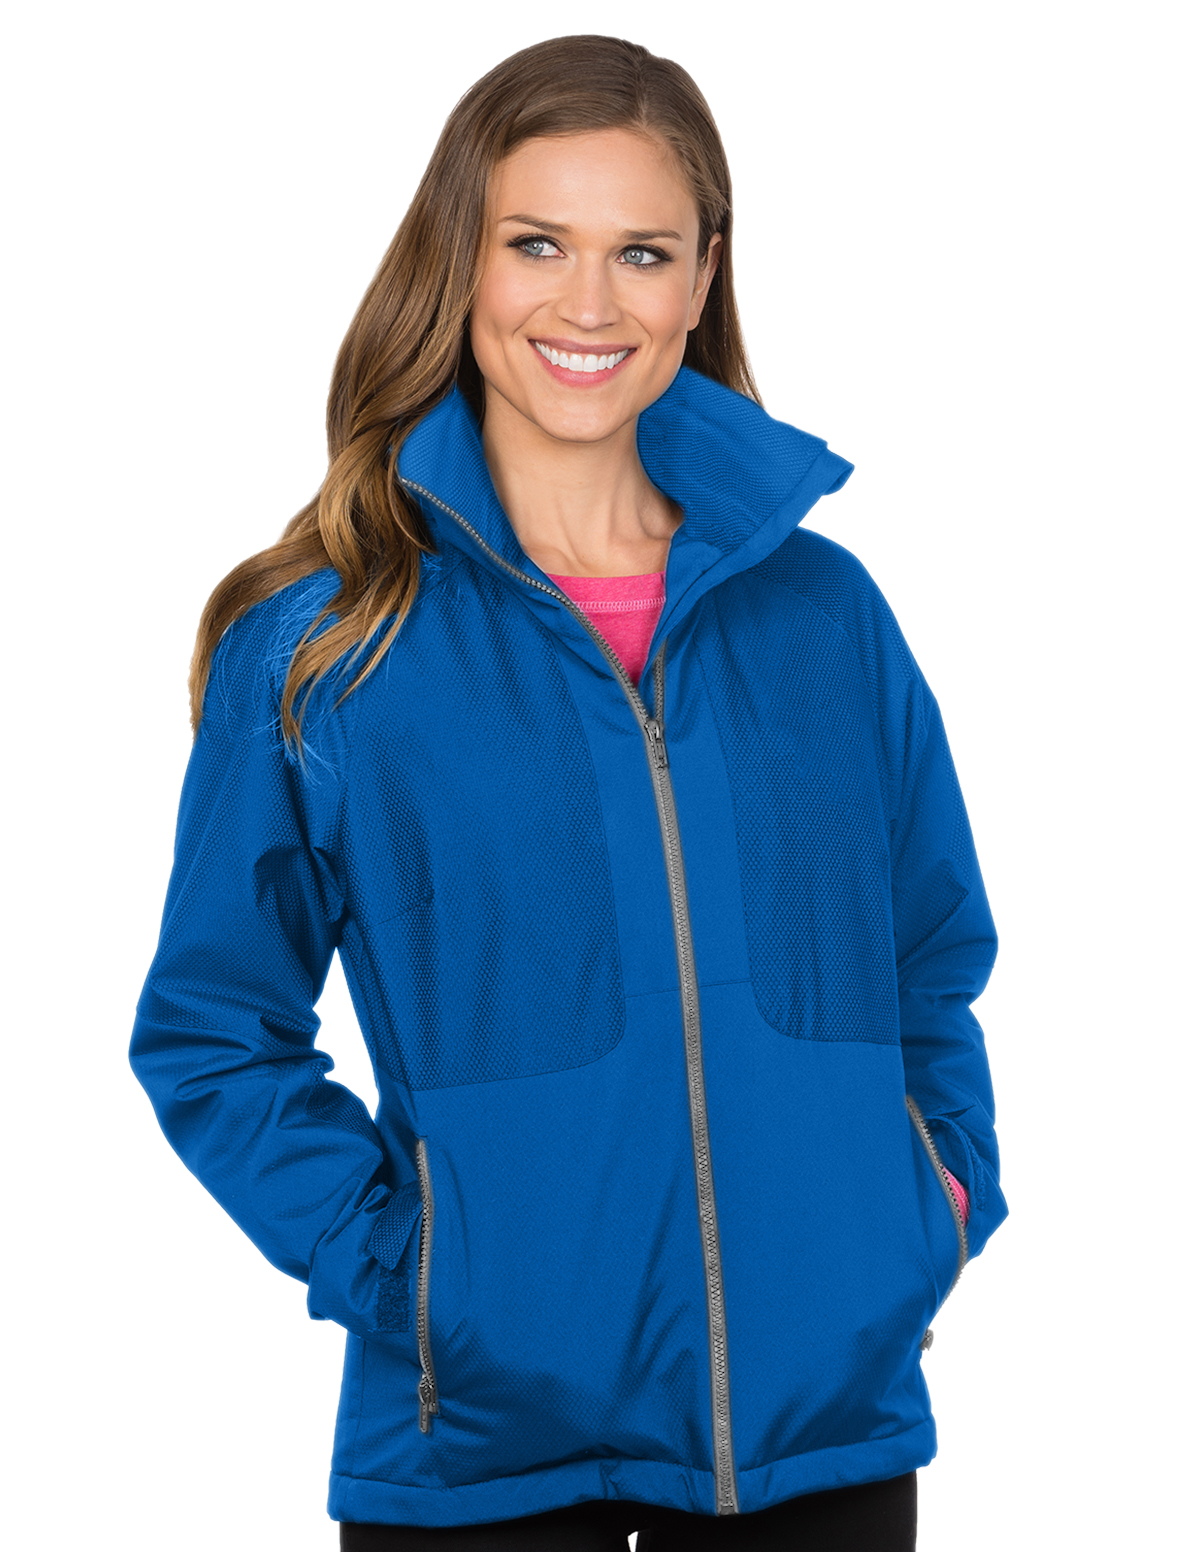 Bellrose-Womens Hooded Honeycomb Poly/Fleece Jacket-Tri-Mountain